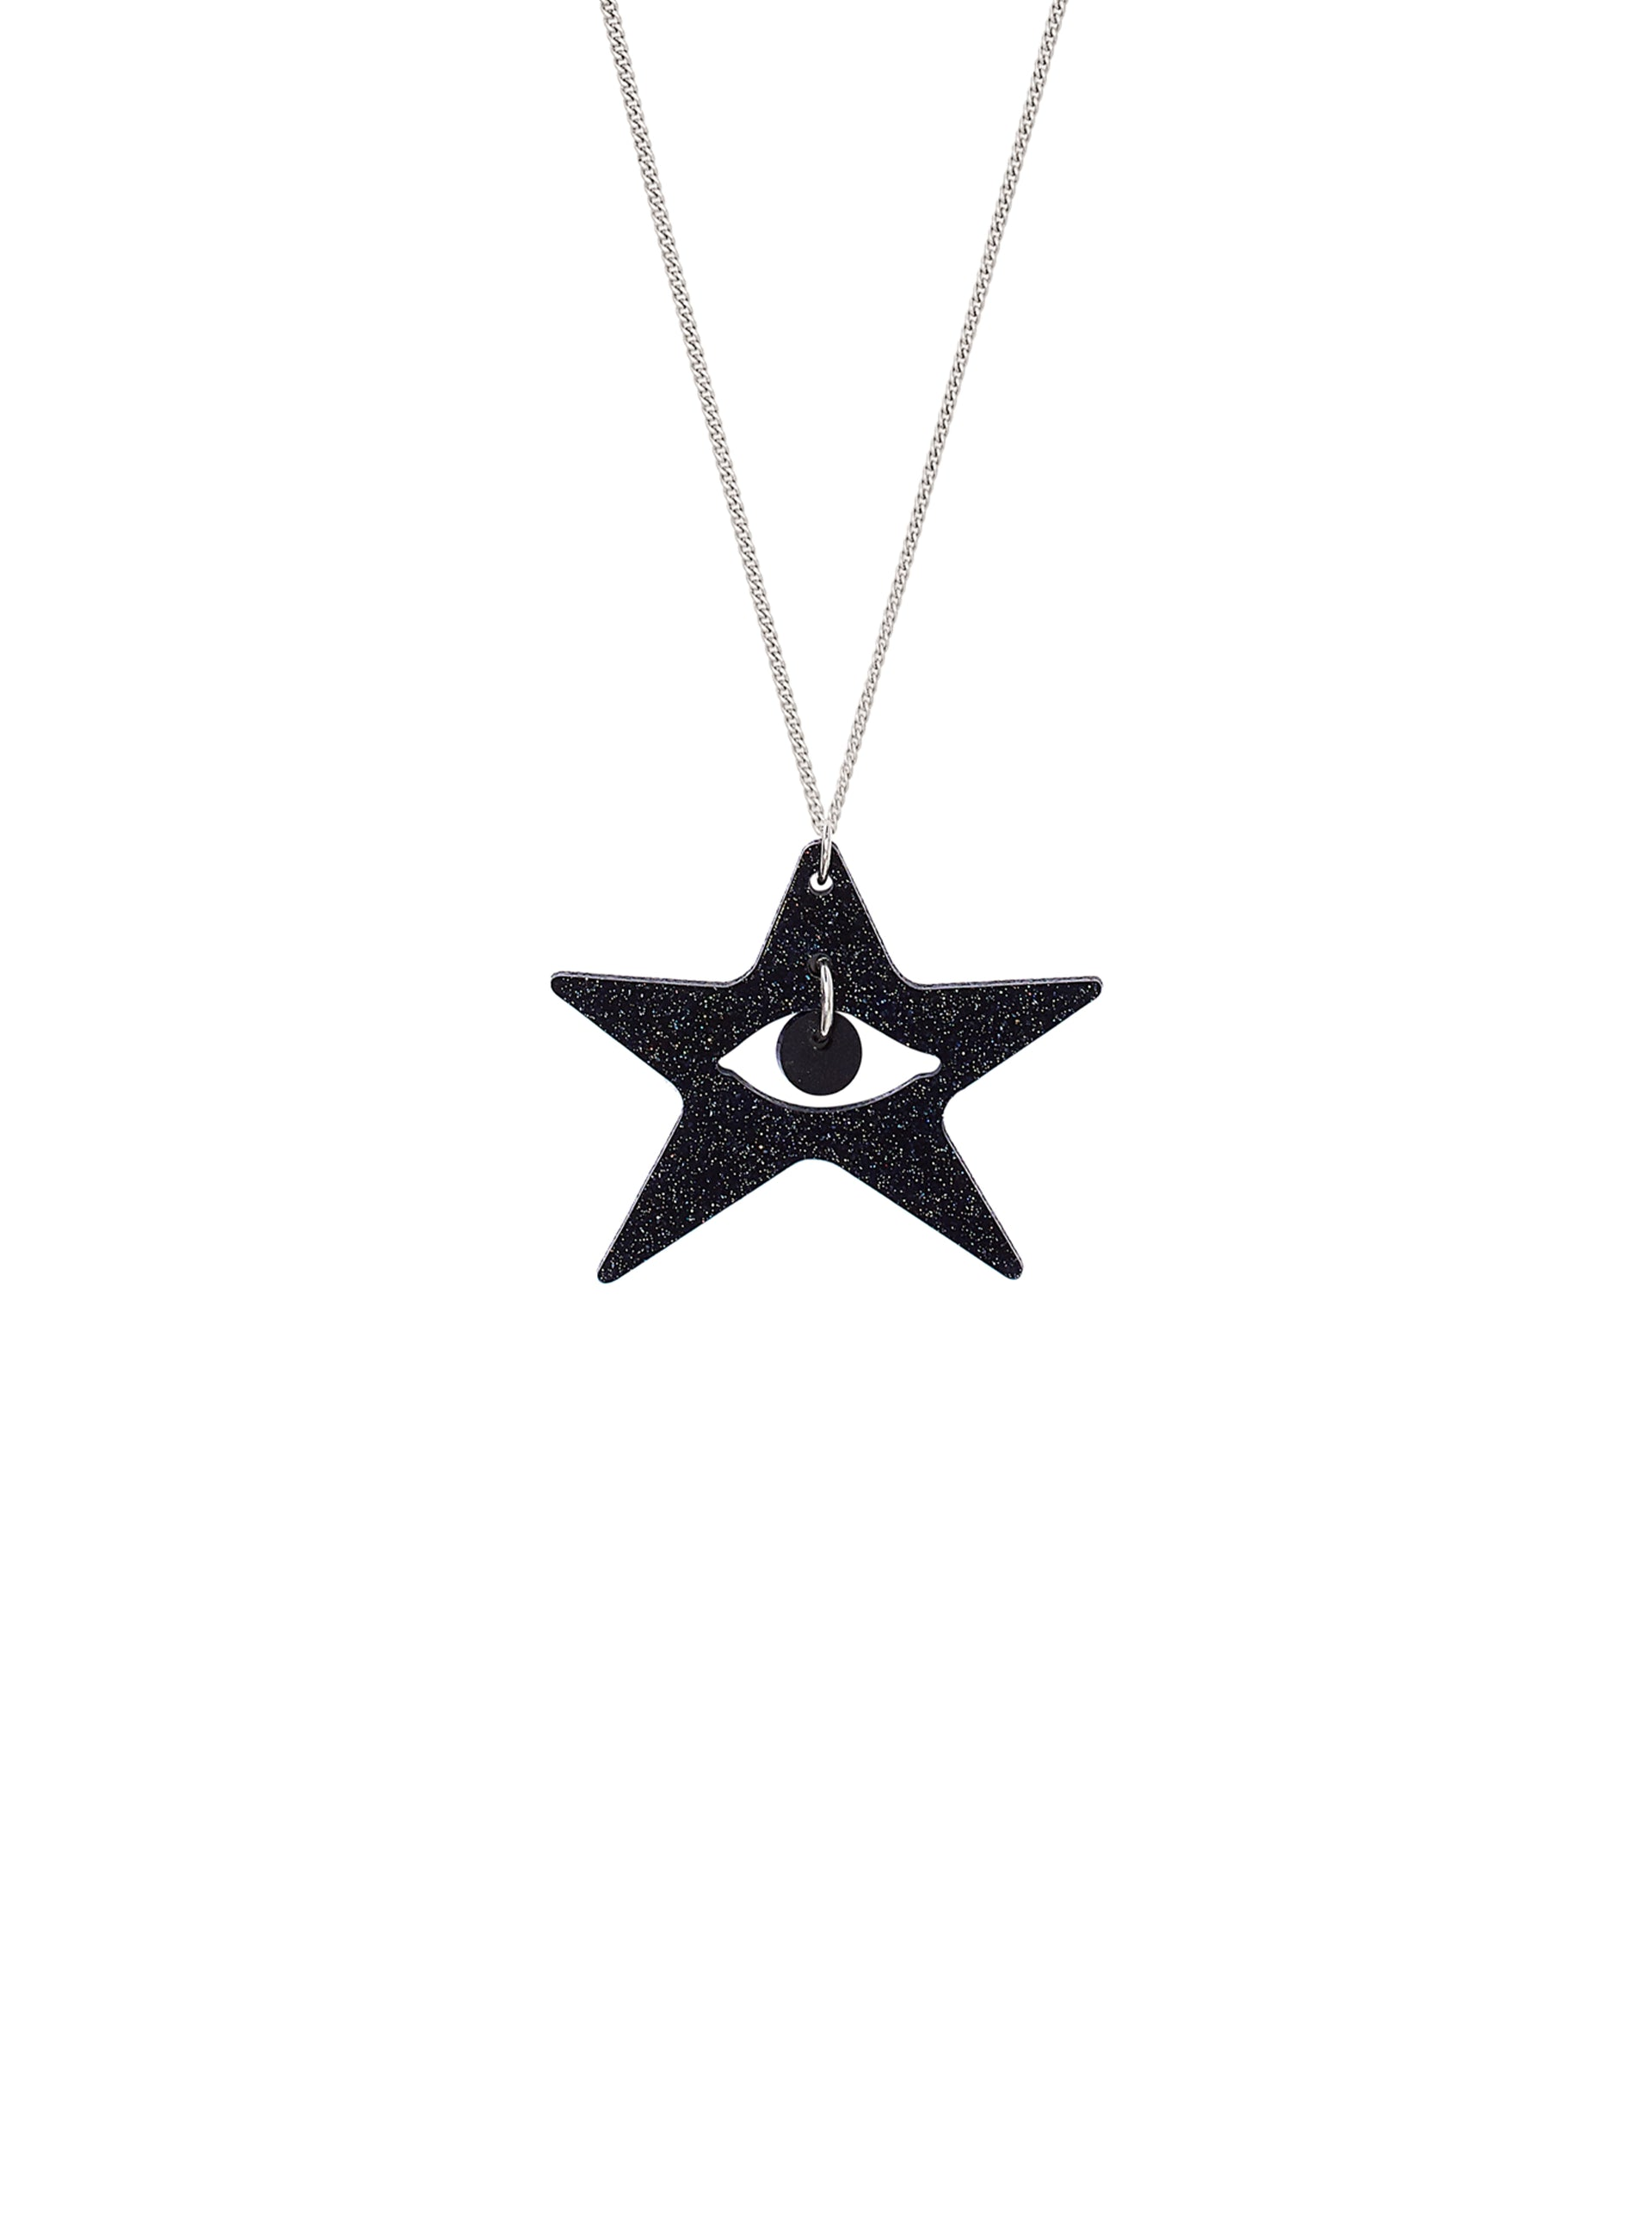 Glam-Rock-Star-Necklace